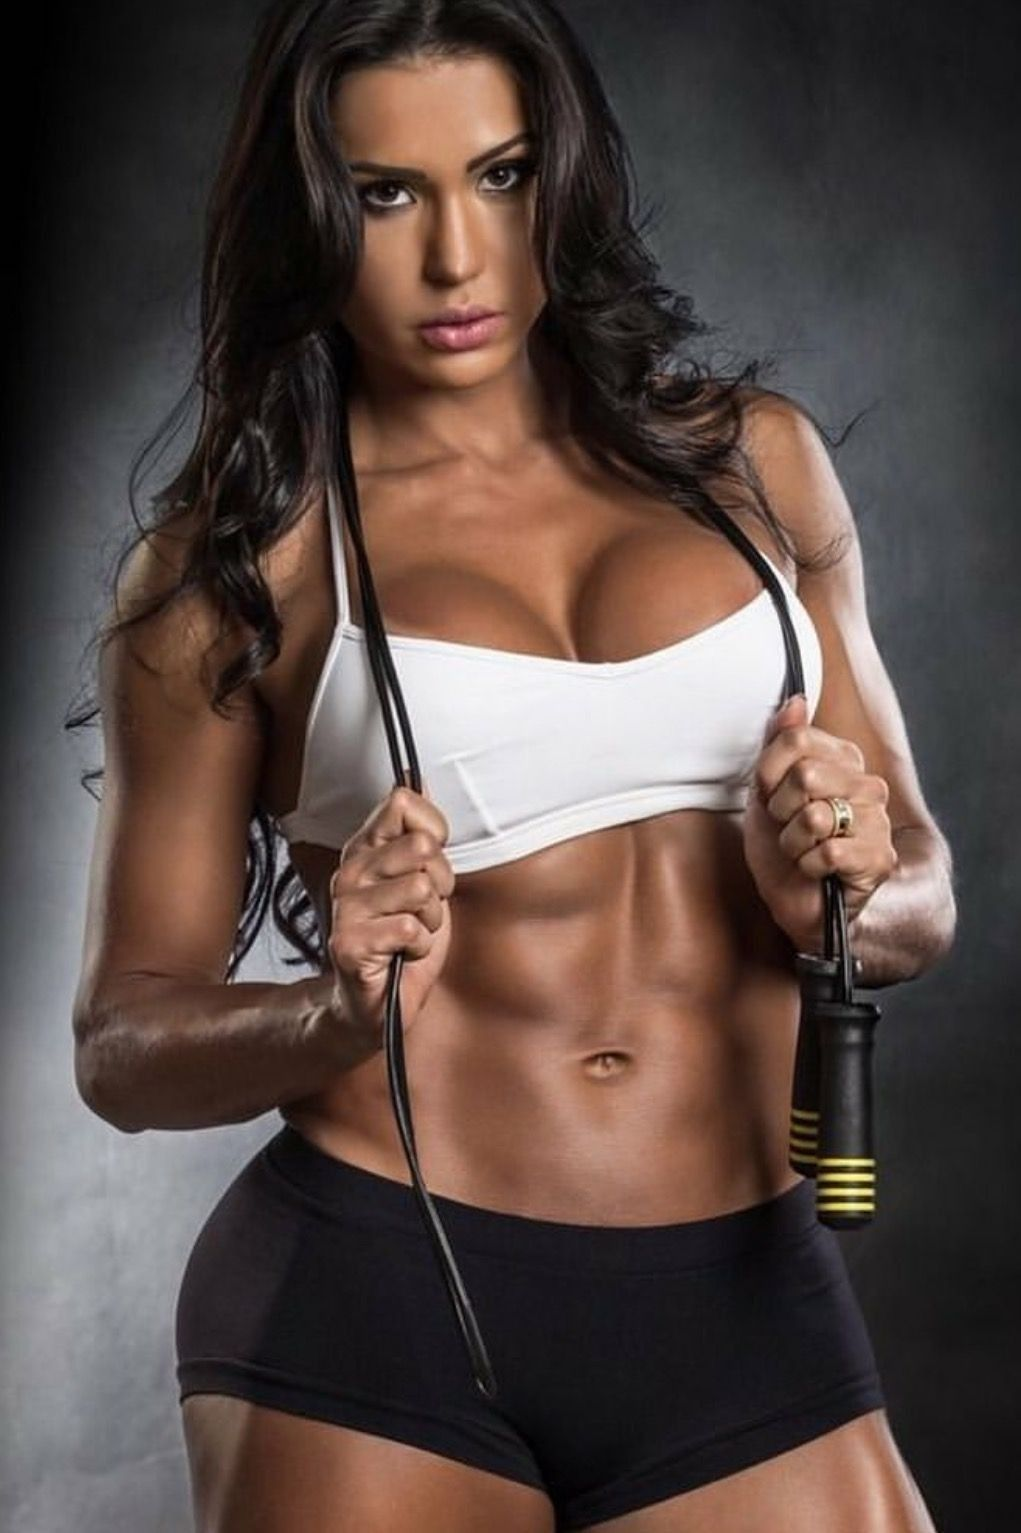 Amazing Abs Fit Rating  Fotos Fitness, Modelos De Fitness -1488